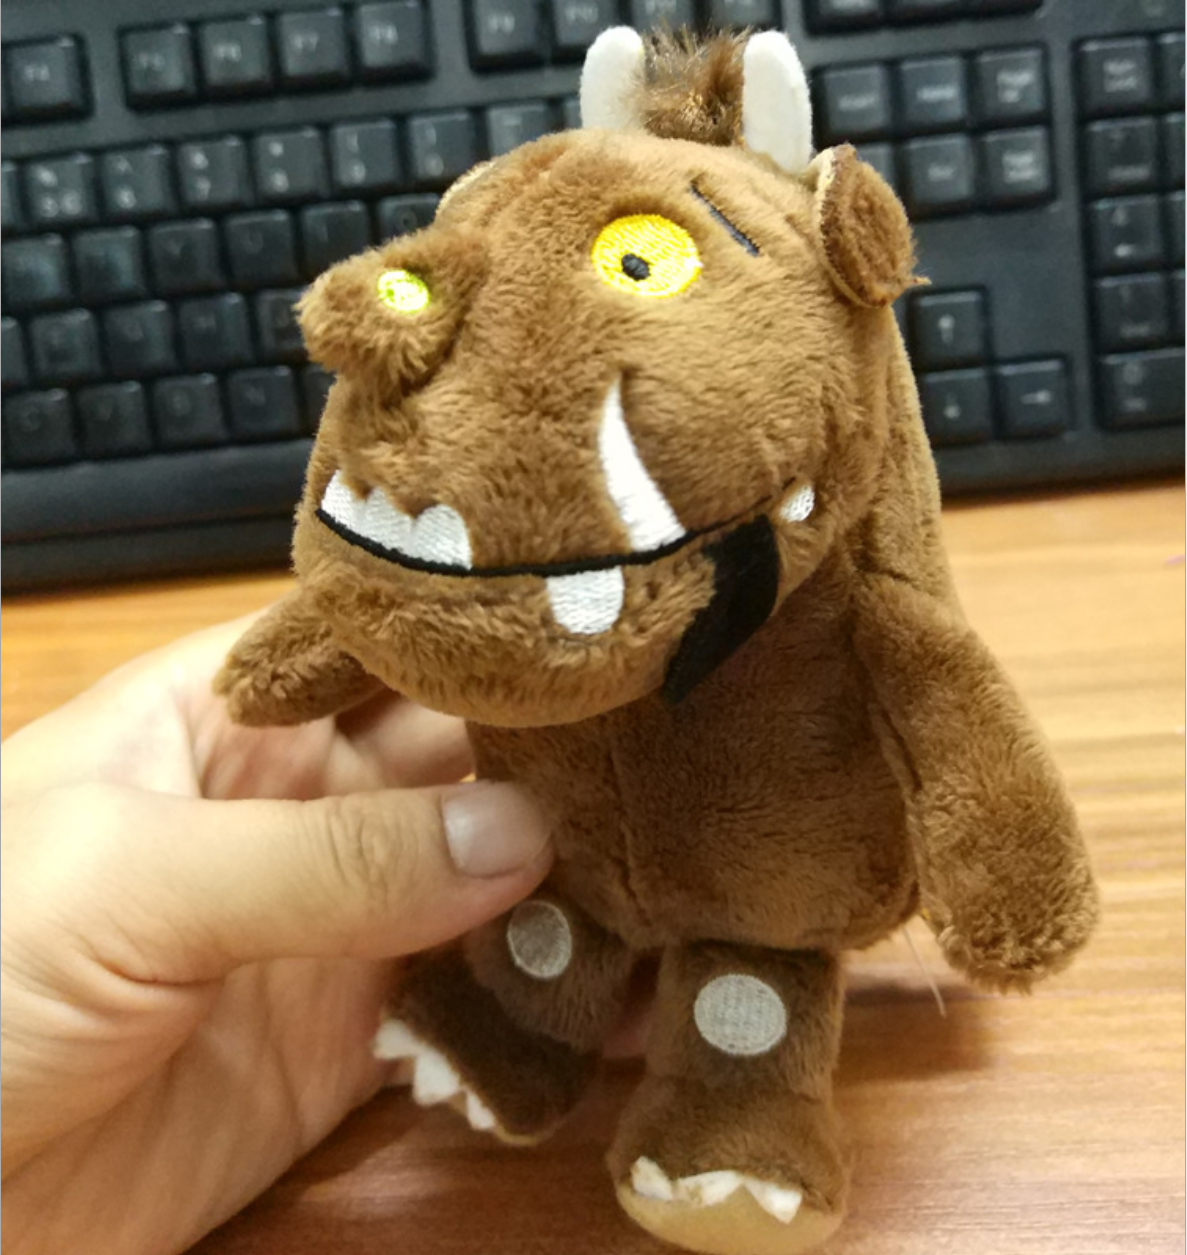 Hot Sale New 14cm Cartoon The Gruffaloes Cow Plush Toys Doll Peluche Arrivals Stuffed Animals Plush Toy Children Gift